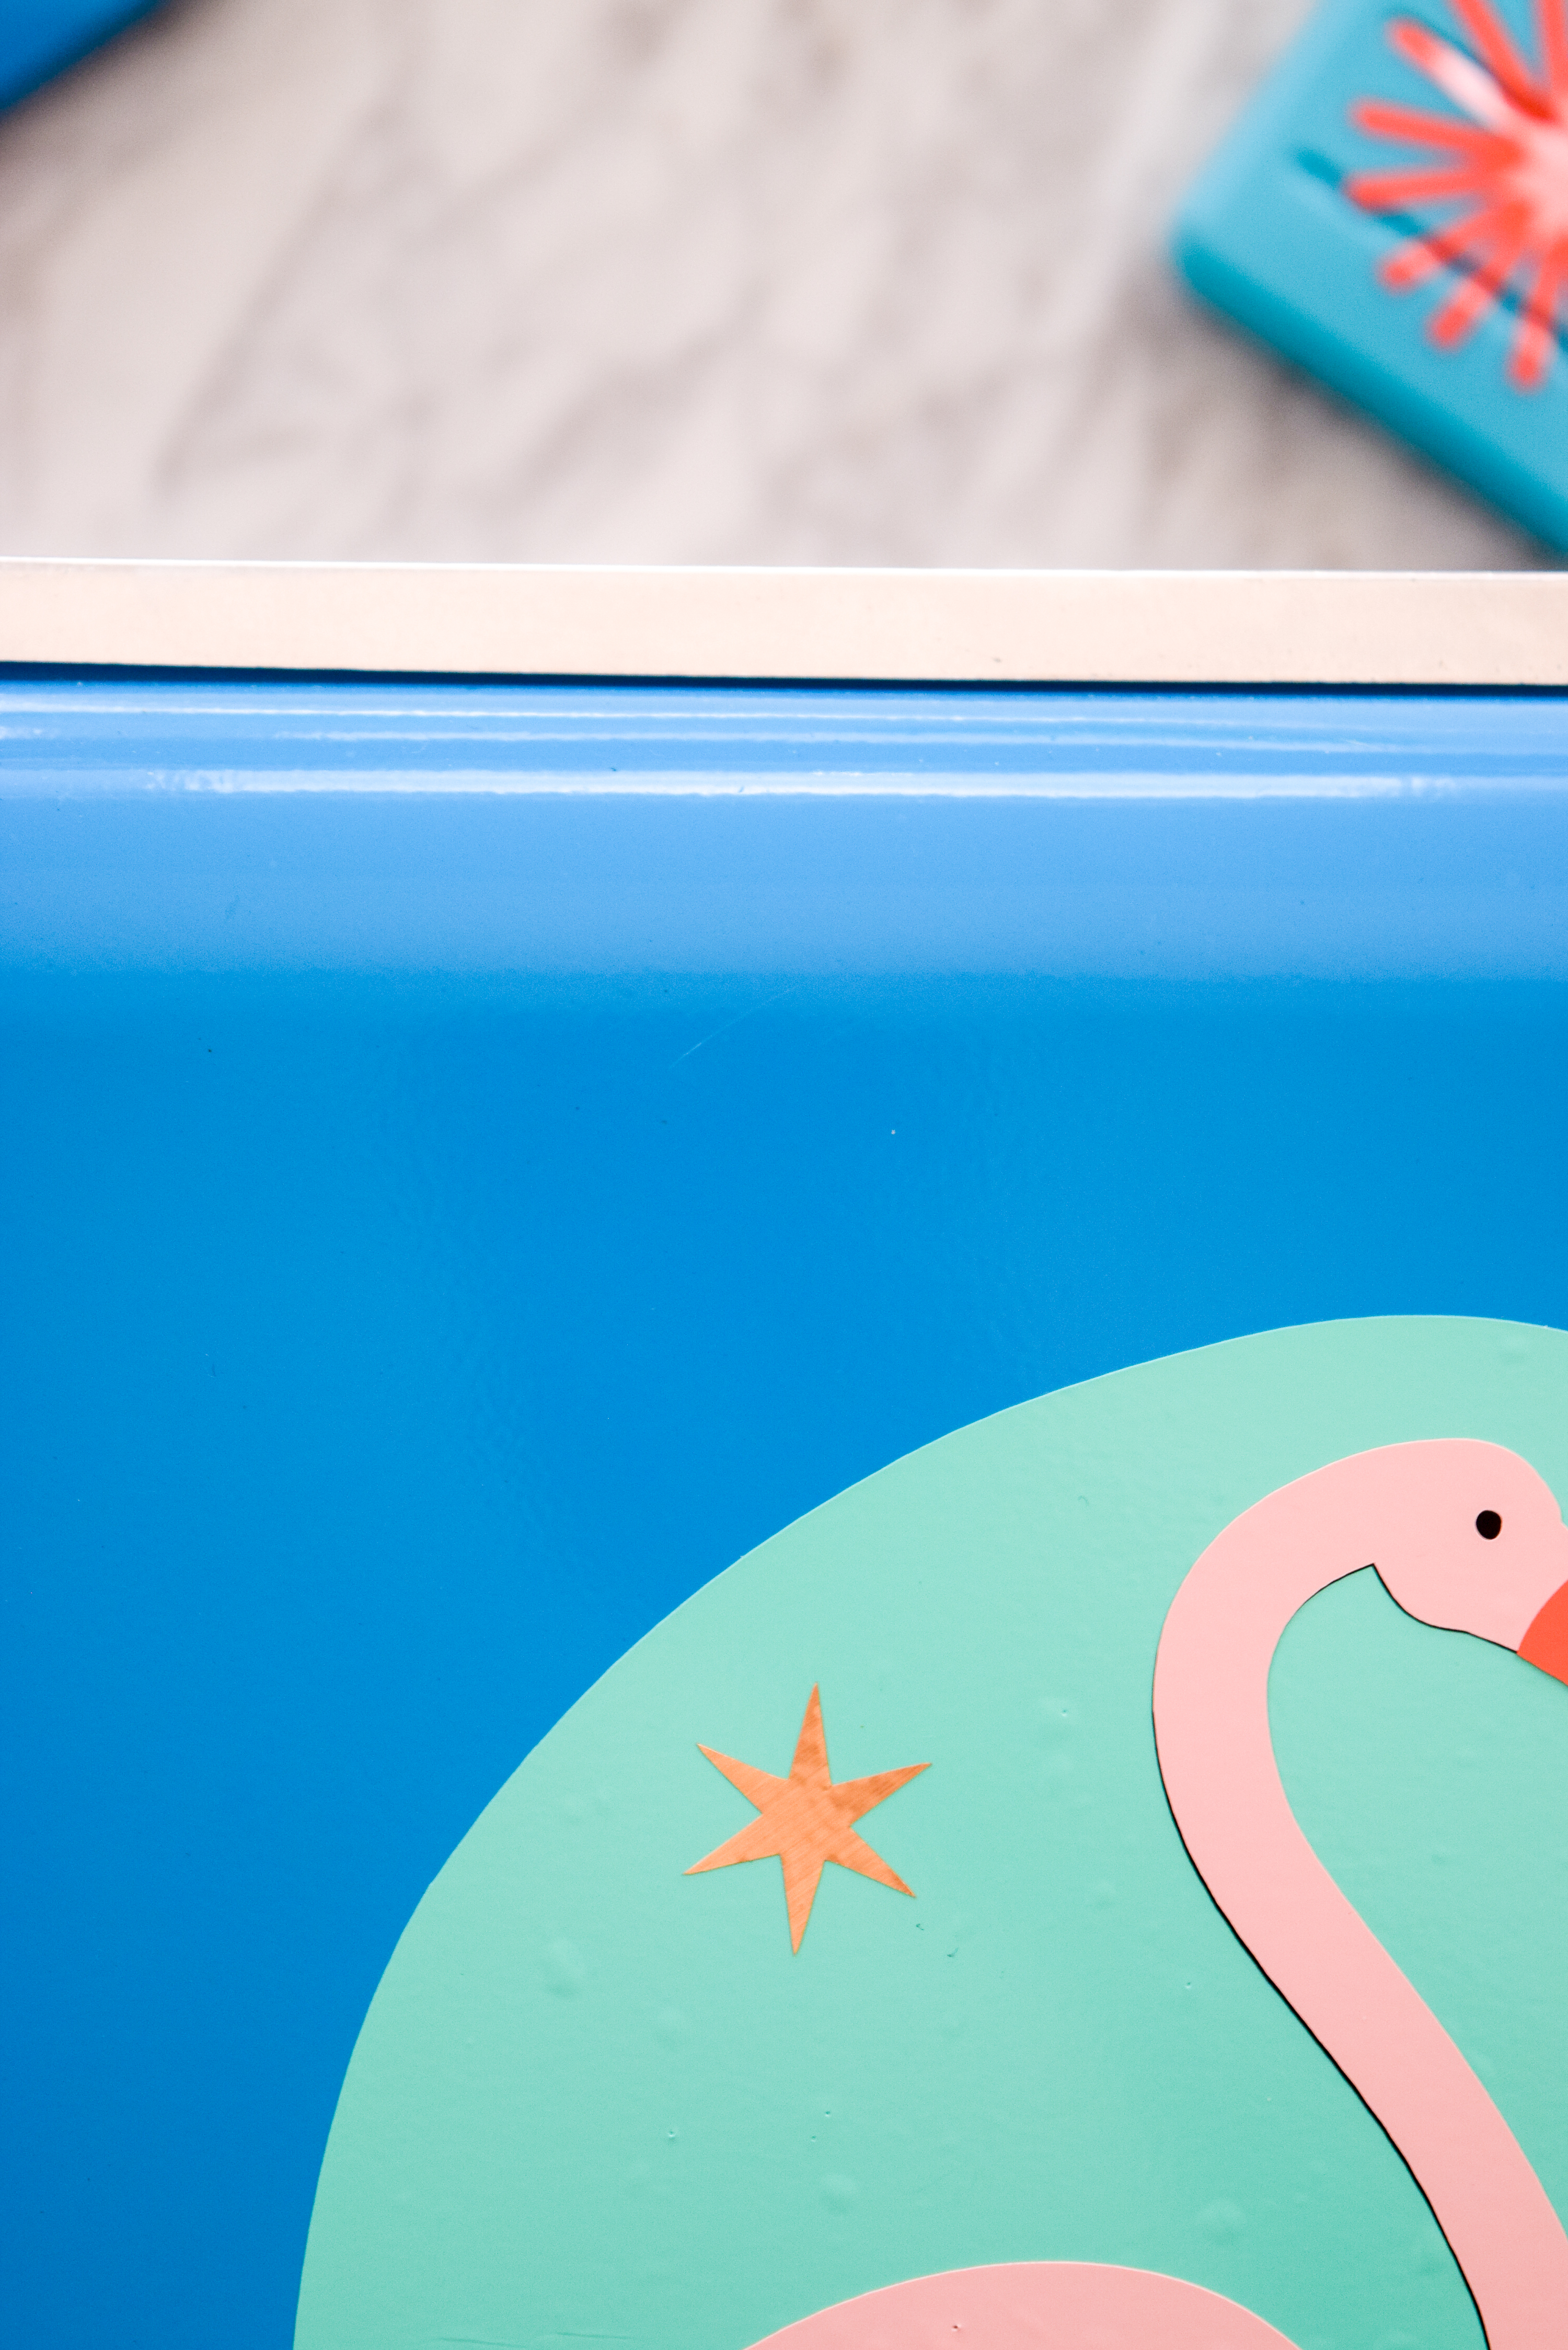 Is your cooler in need of a summer refresh? Grab the tutorial for these DIY Summer Cooler Decals, and get on your way! Those bevies won't cool themselves. Oh, just make sure you've got your Cricut Explore Air 2 ready to go as well.